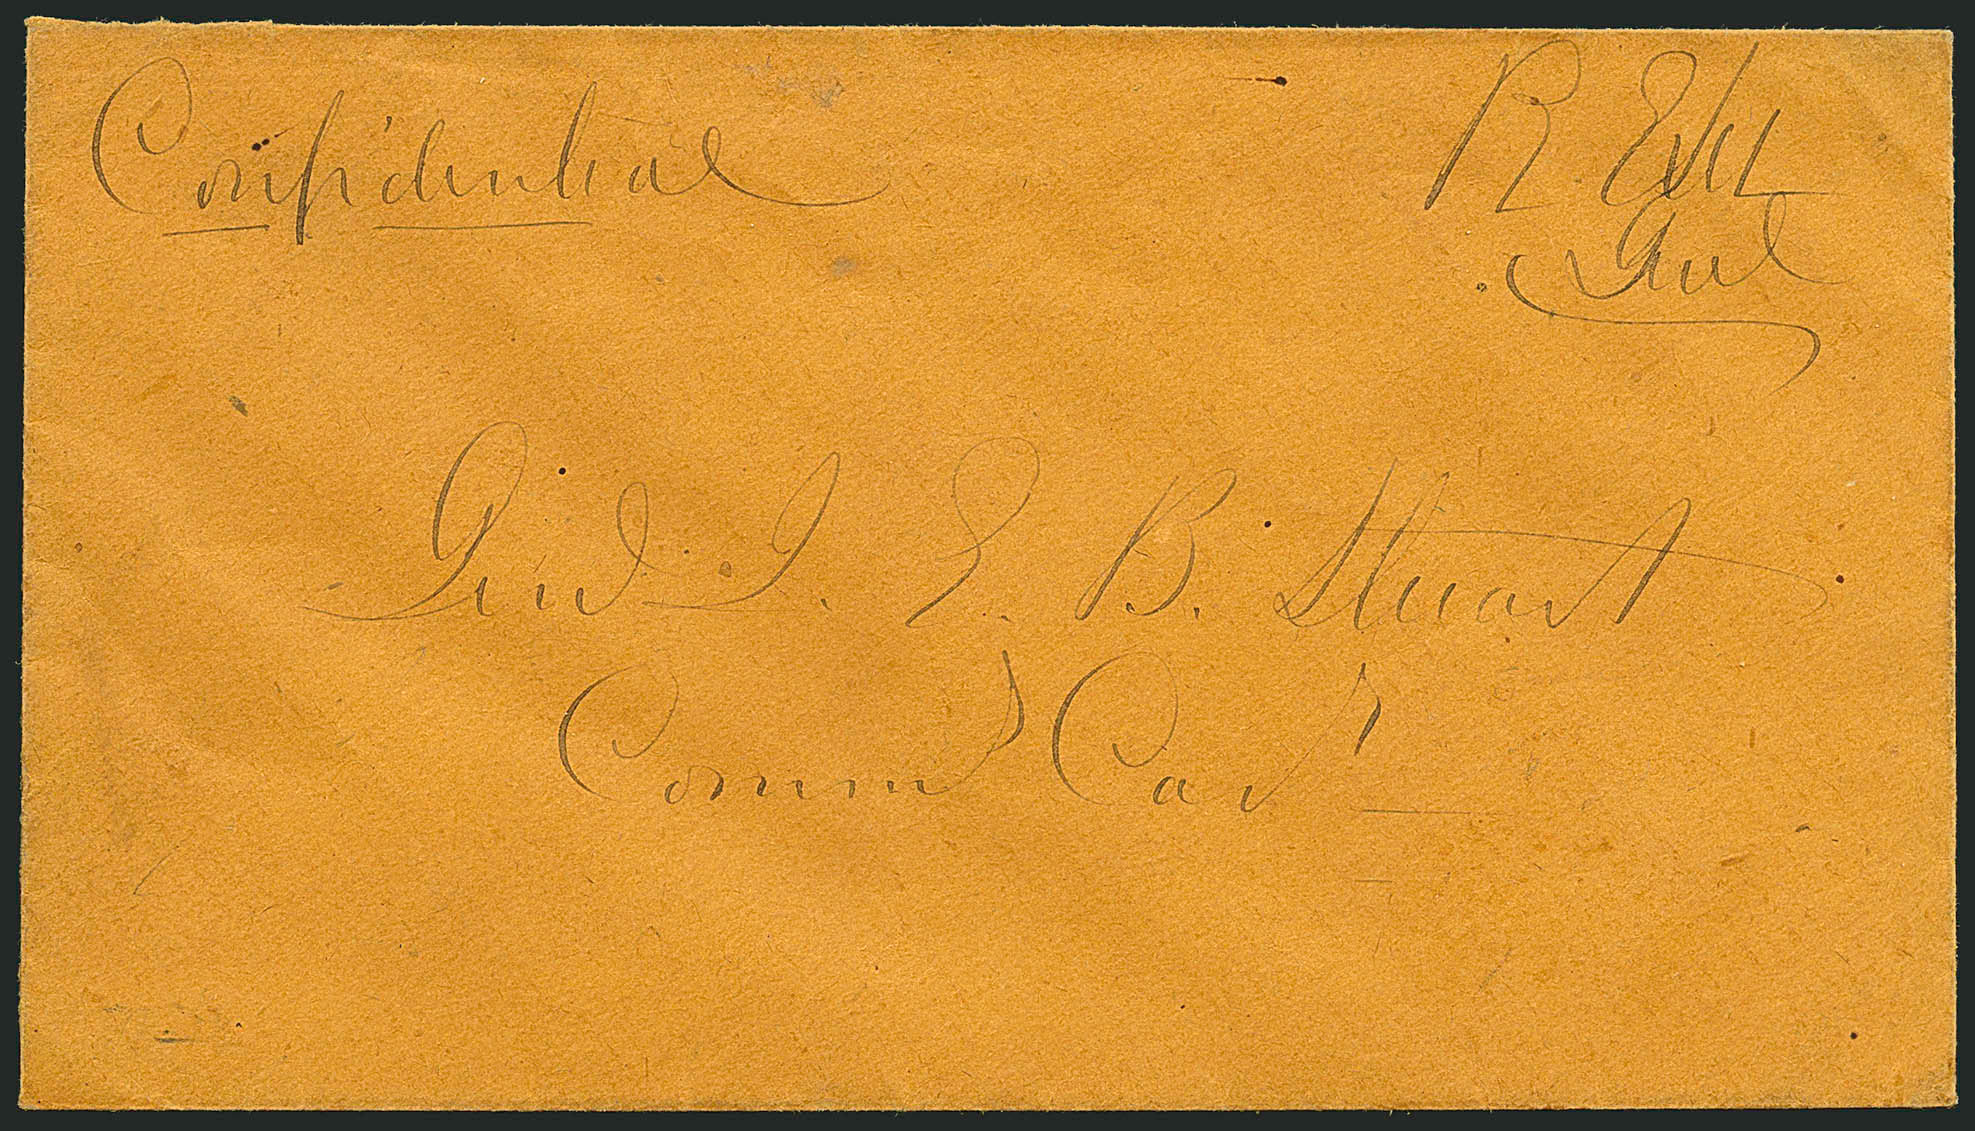 Sale no. 1117 — Lot no. 4476 — Siegel Auction Galleries